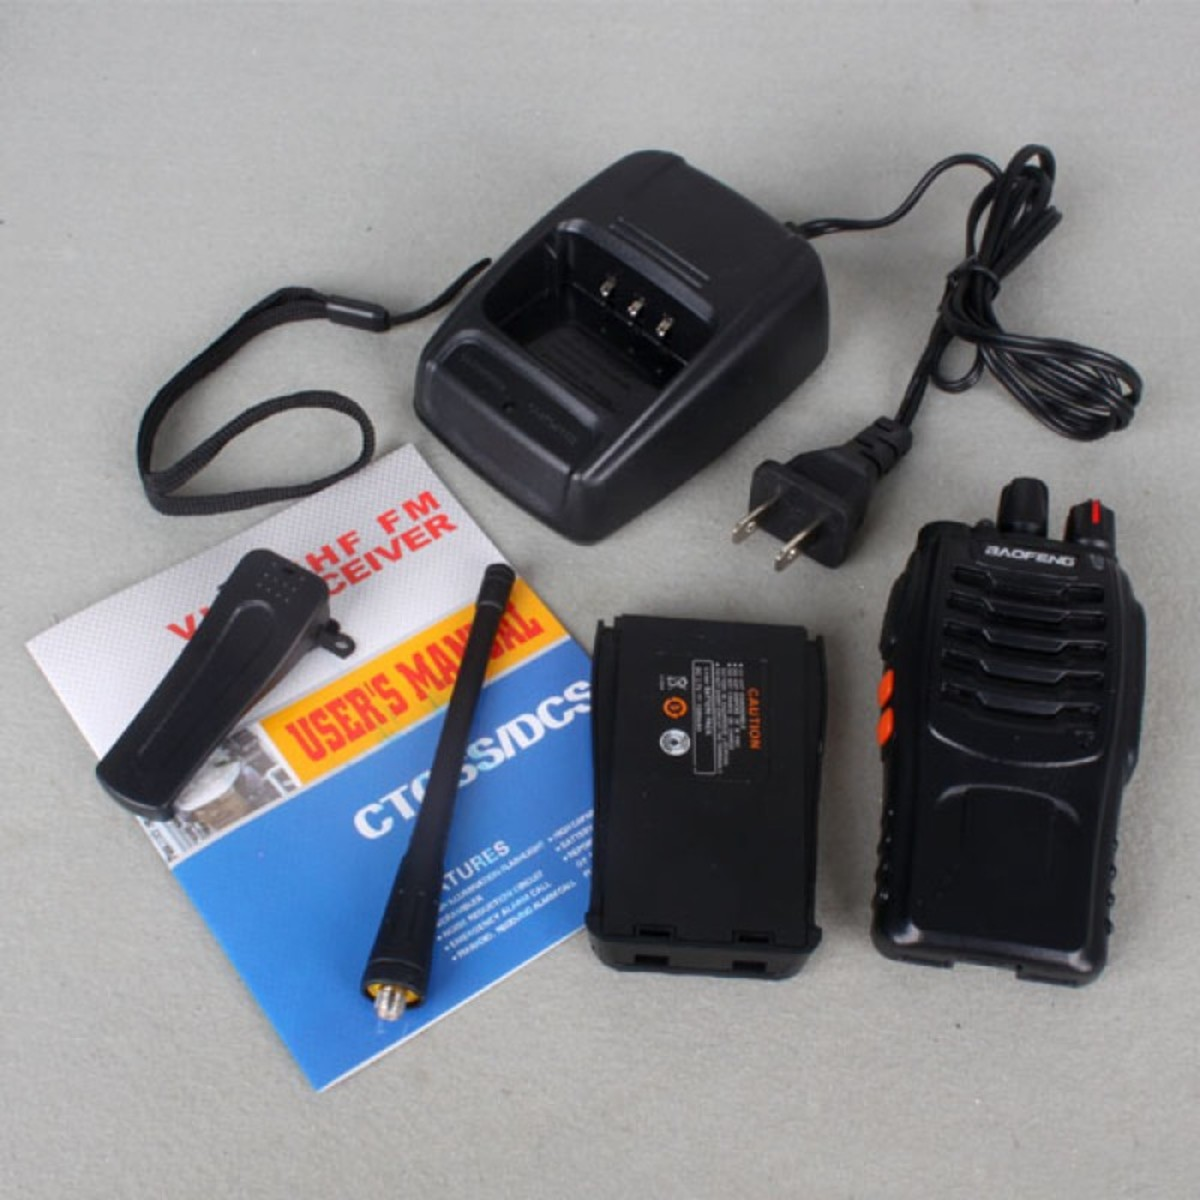 my-review-of-the-pofung-bf-888s-uhf-fm-transceiver